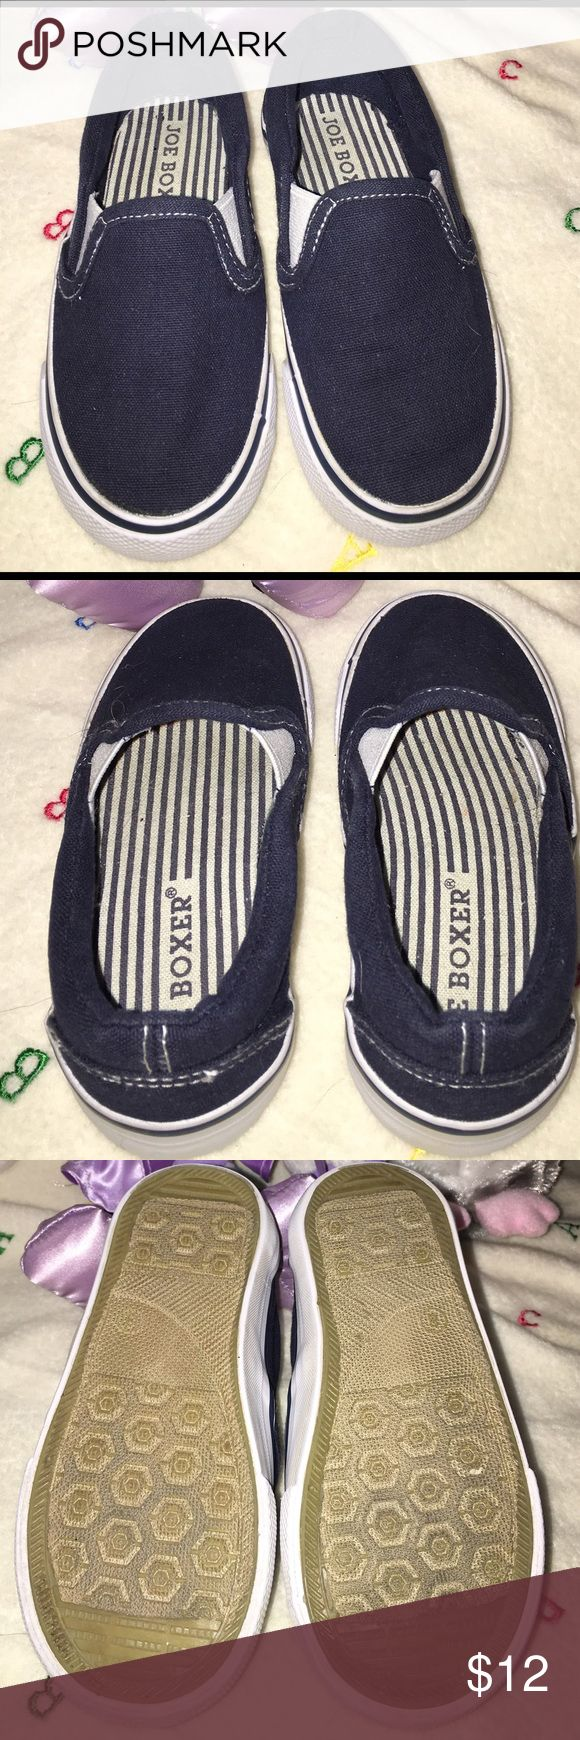 Navy Joe Boxer slip on casual shoes Navy Joe Boxer slip on casual shoes in great condition. No tears or stains. Lightly worn. Size 8.  Can be for a girl or boy. My little girl wore these.  BX-A Joe Boxer Shoes Sneakers